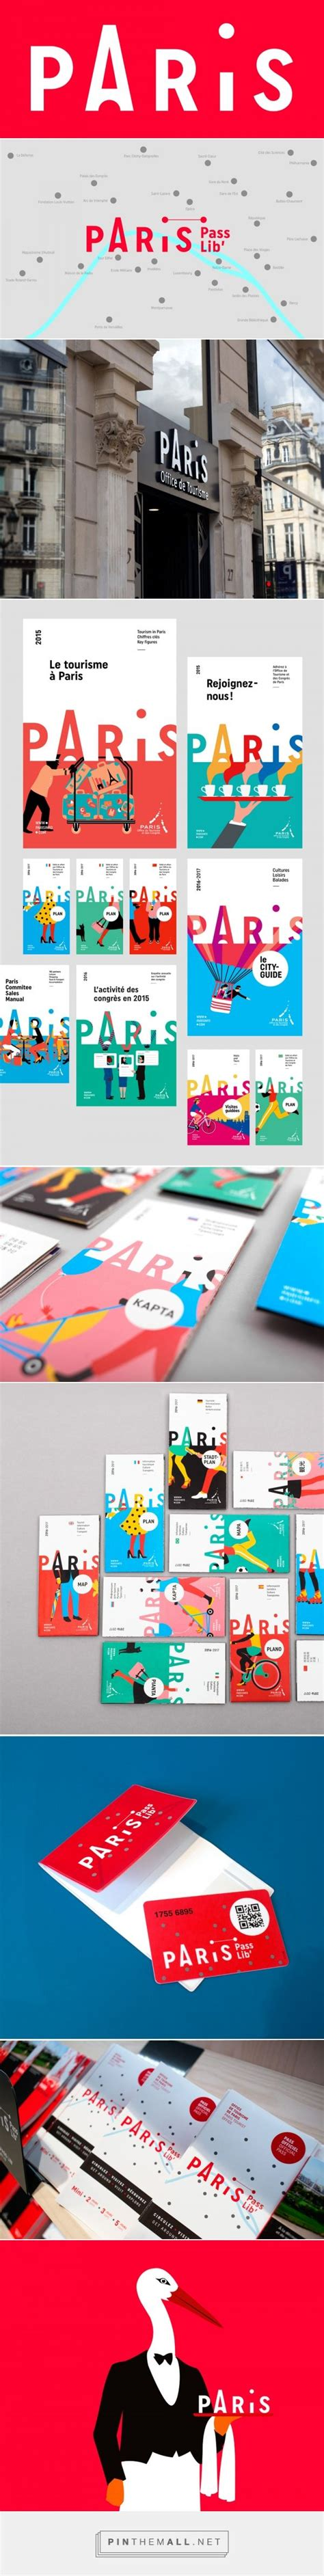 graphic design bureau 17 best images about graphic design on